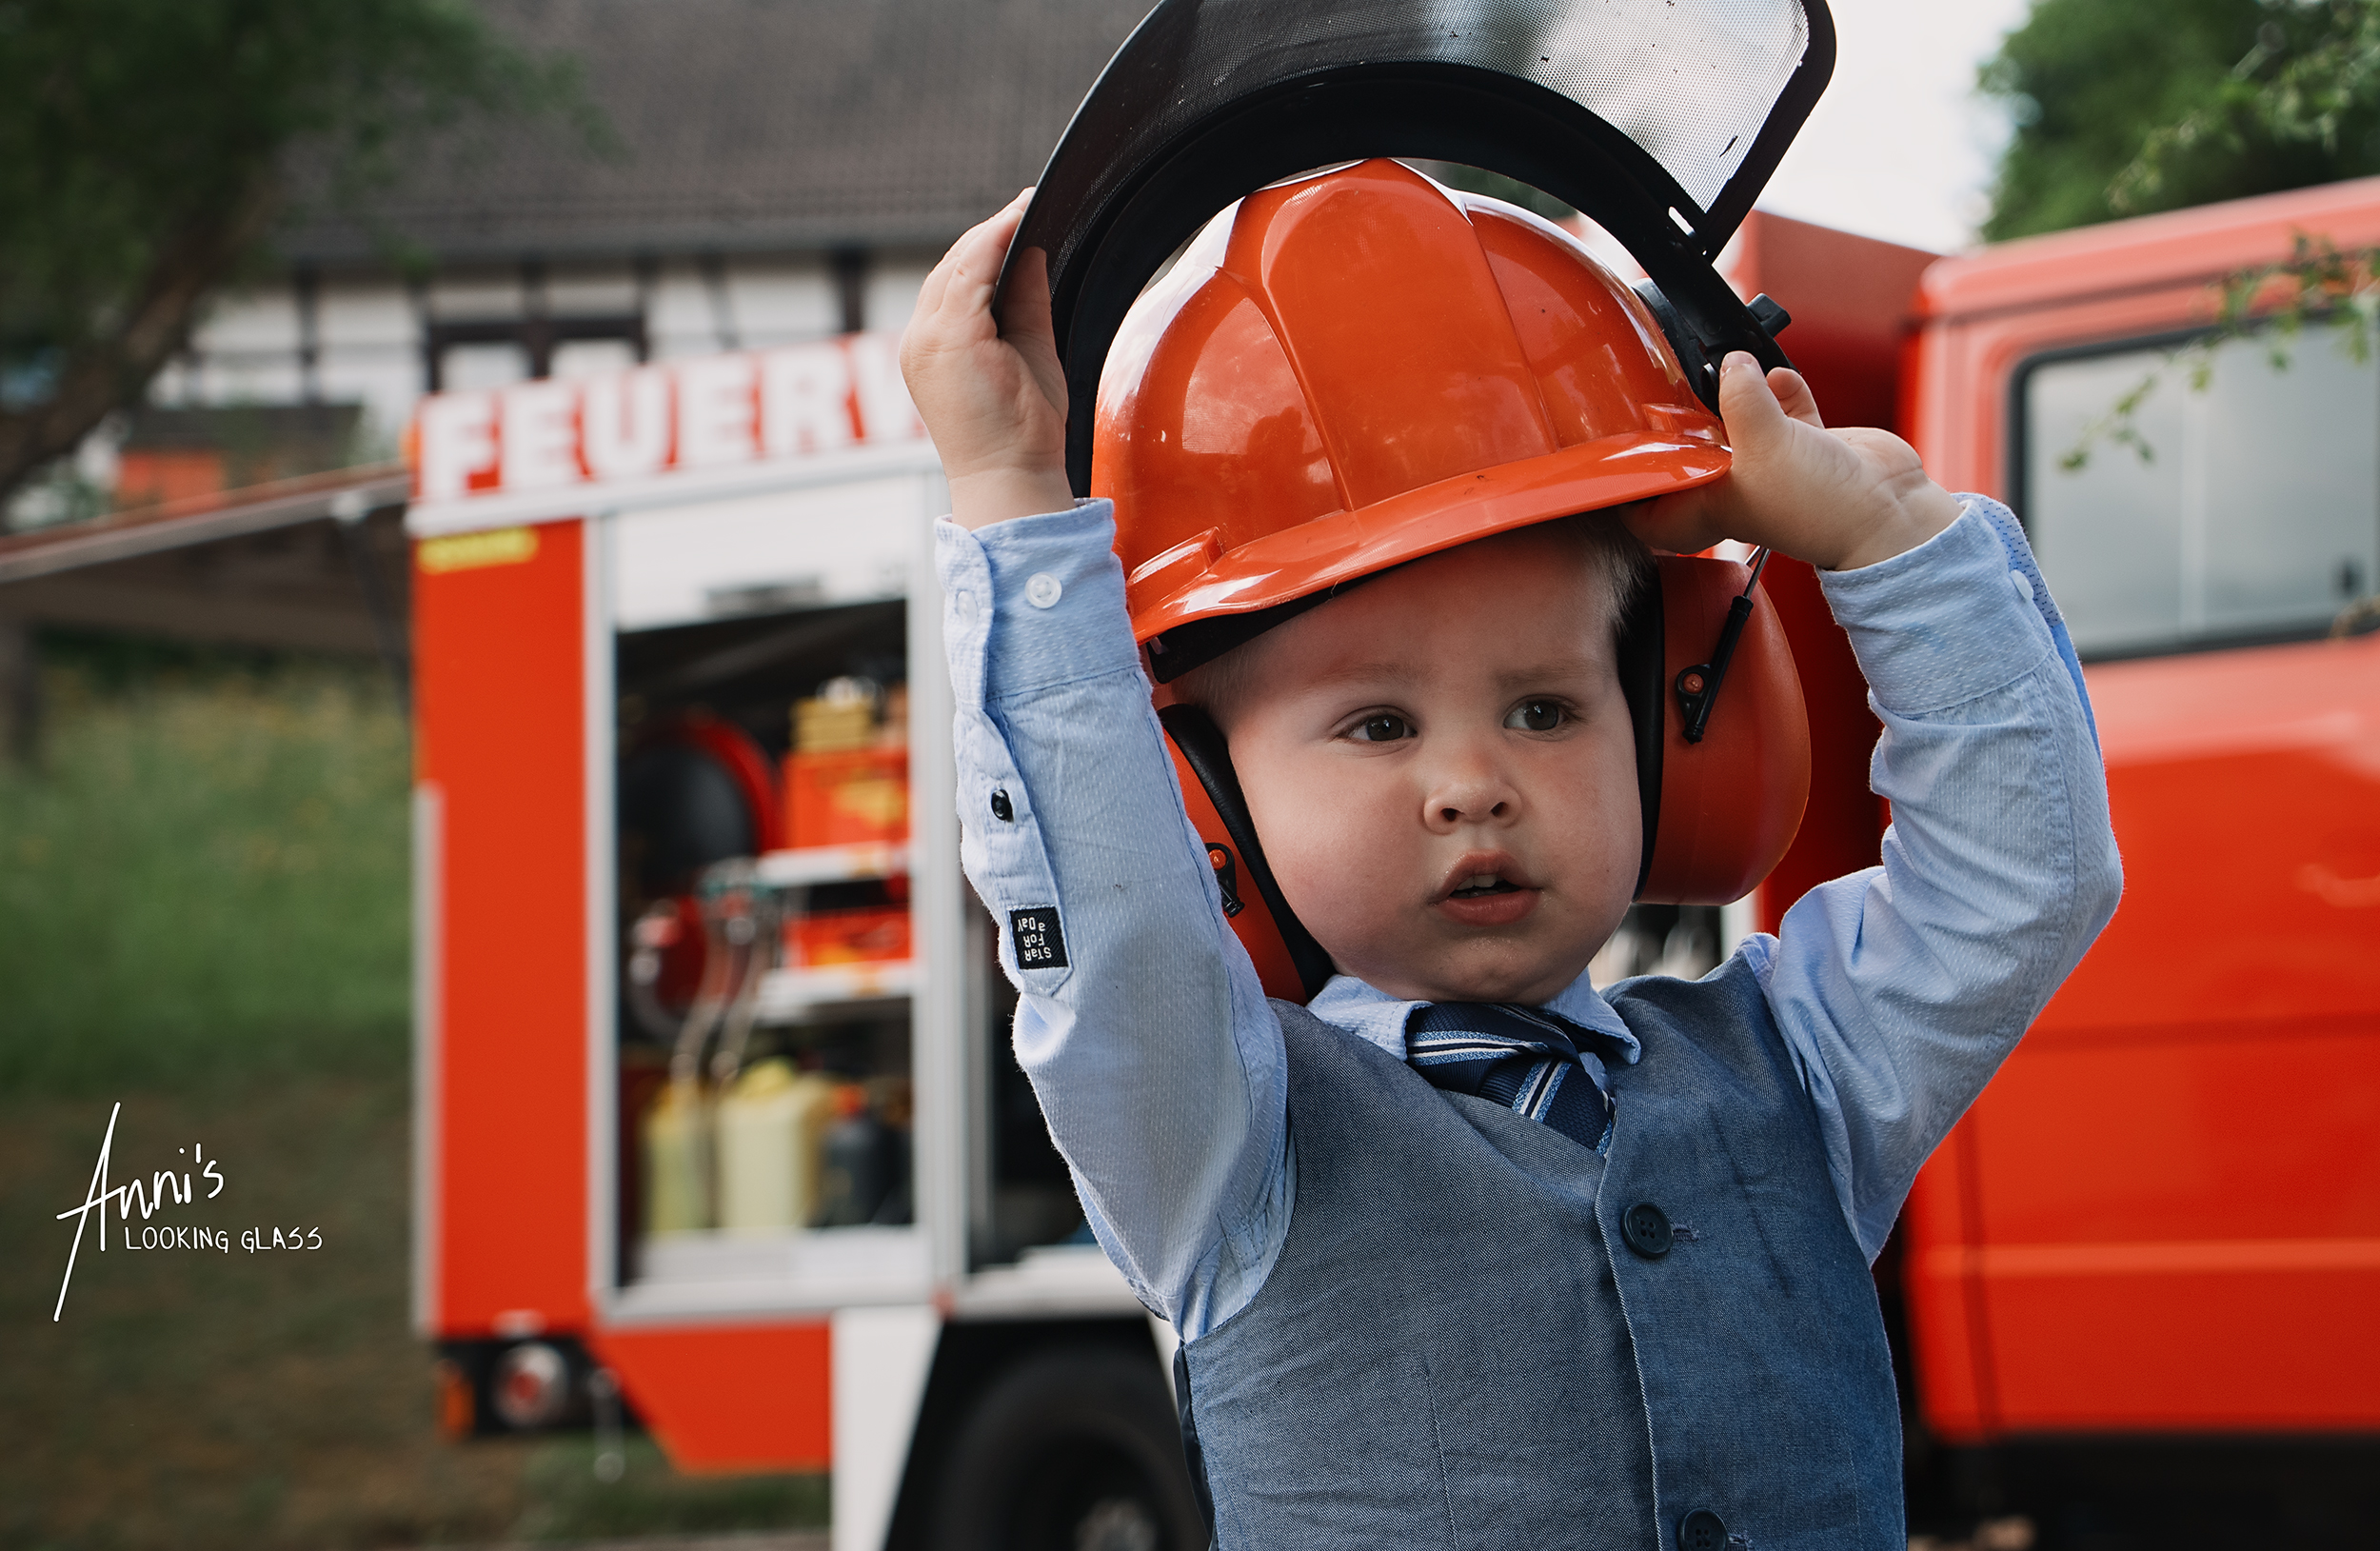 A toddler playing with a firefighter's helmet